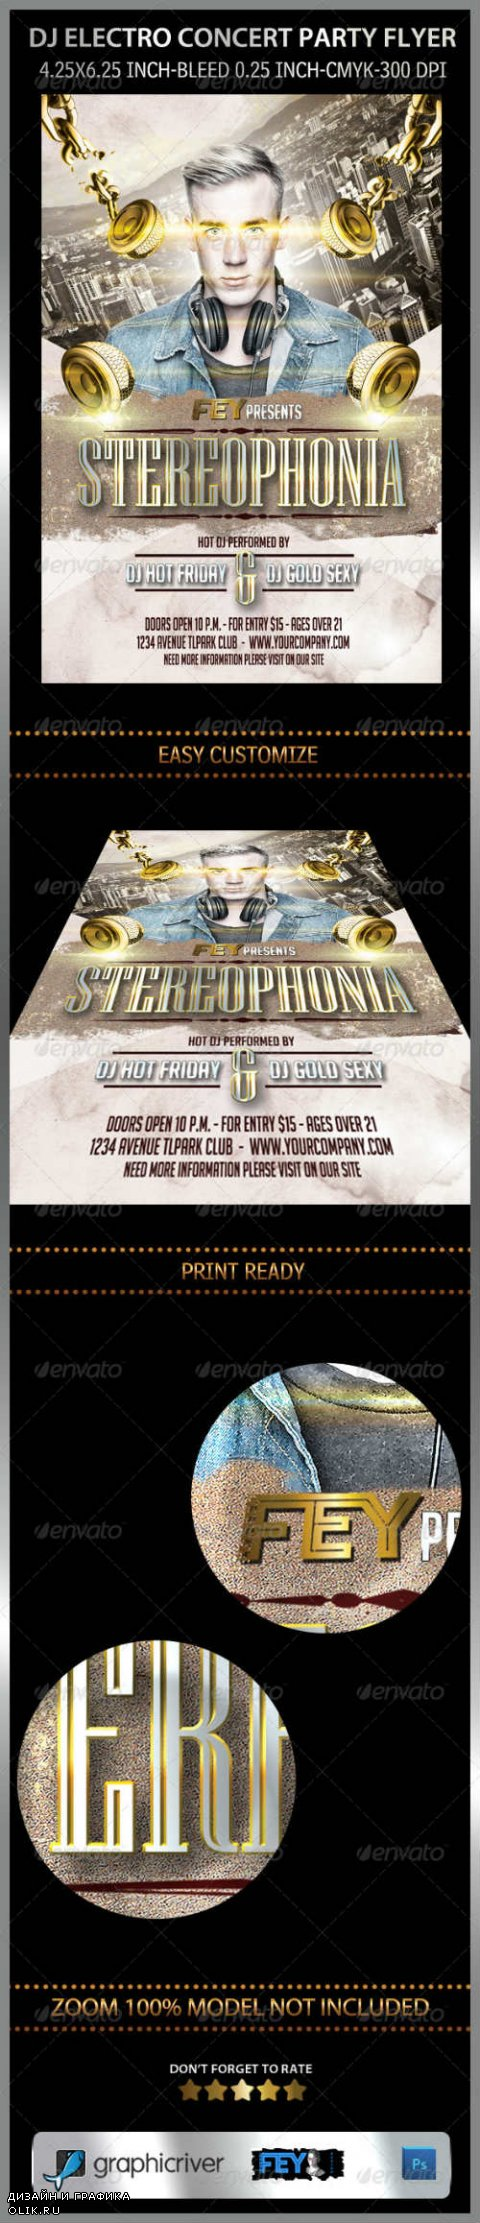 DJ Electro Concert Party Flyer 7896417